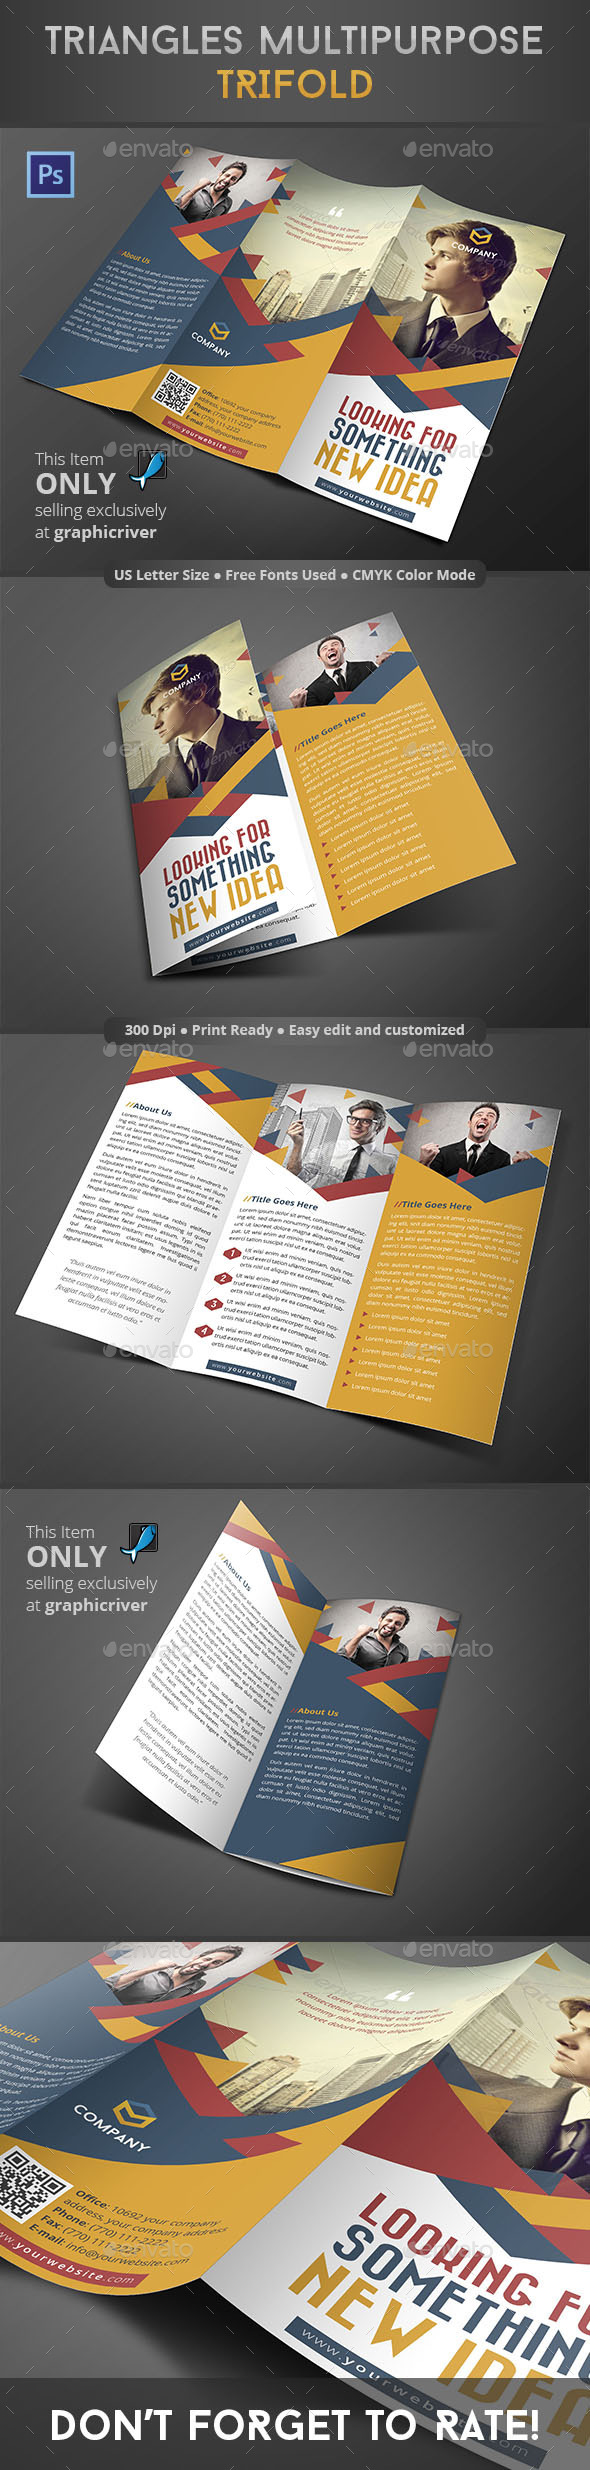 GraphicRiver Triangles Multipurpose Trifold 8848786